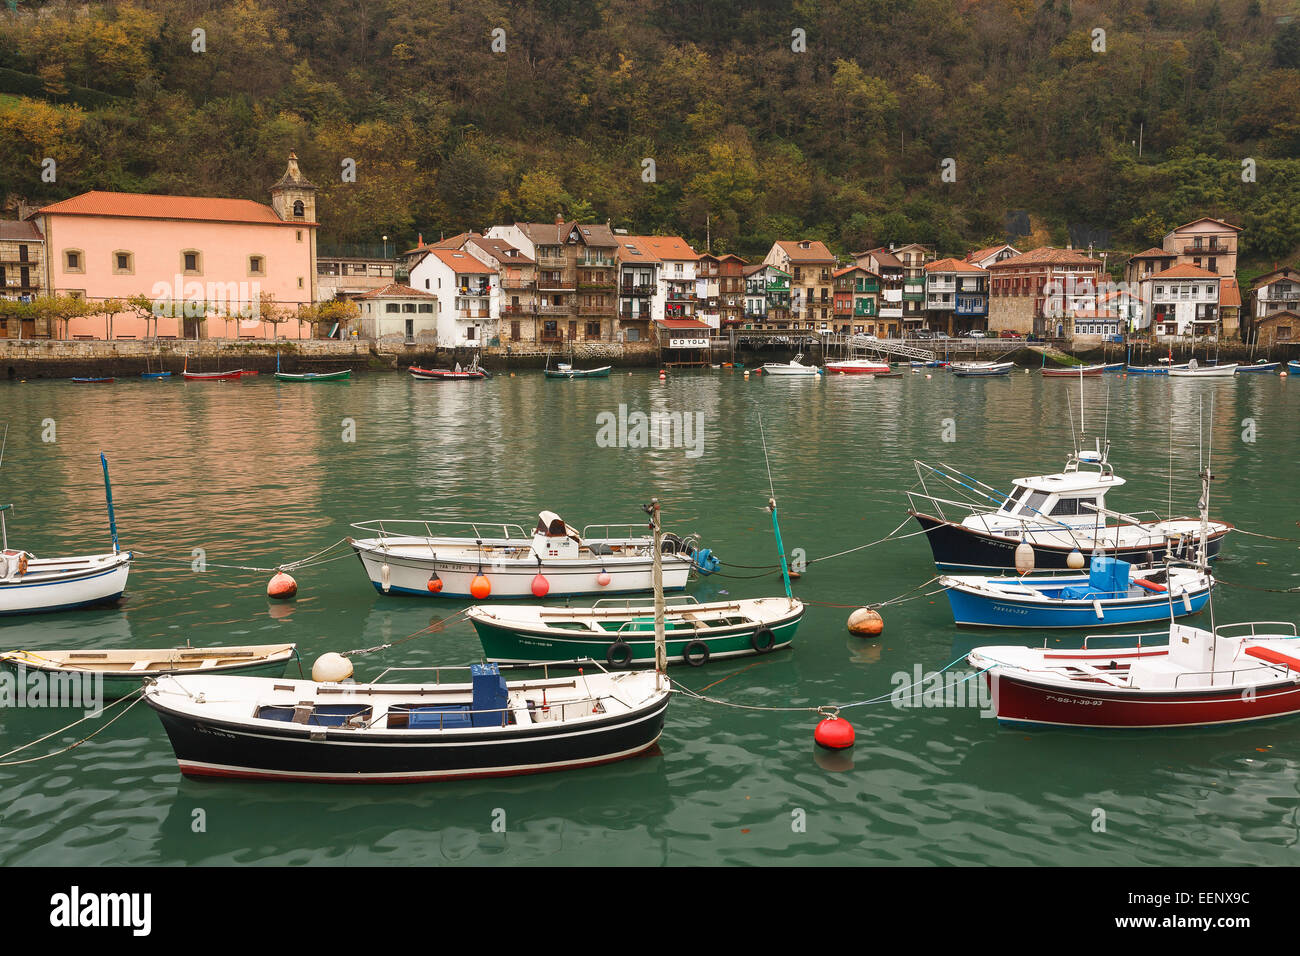 Boat and port. Pasaia. Pasajes de San Juan. Guipuzcoa. Basque country. Spain. Europe - Stock Image